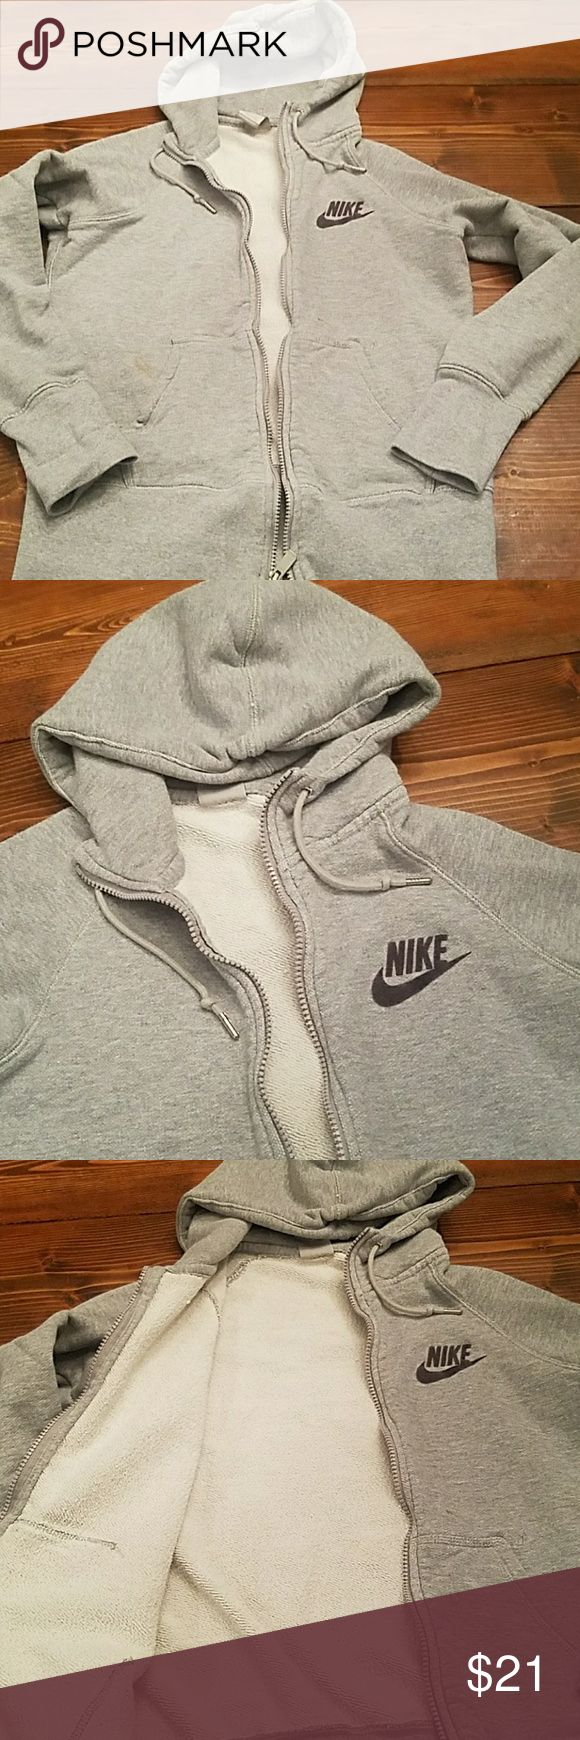 Women's Nike Jacket Fits Like A Medium Grey Nike Zip up hoodie jacket. Super warm! this has a light stain near left pocket and on lower left sleeve (see pics). This is a large, but it fits like a medium IMO. Nike Jackets & Coats